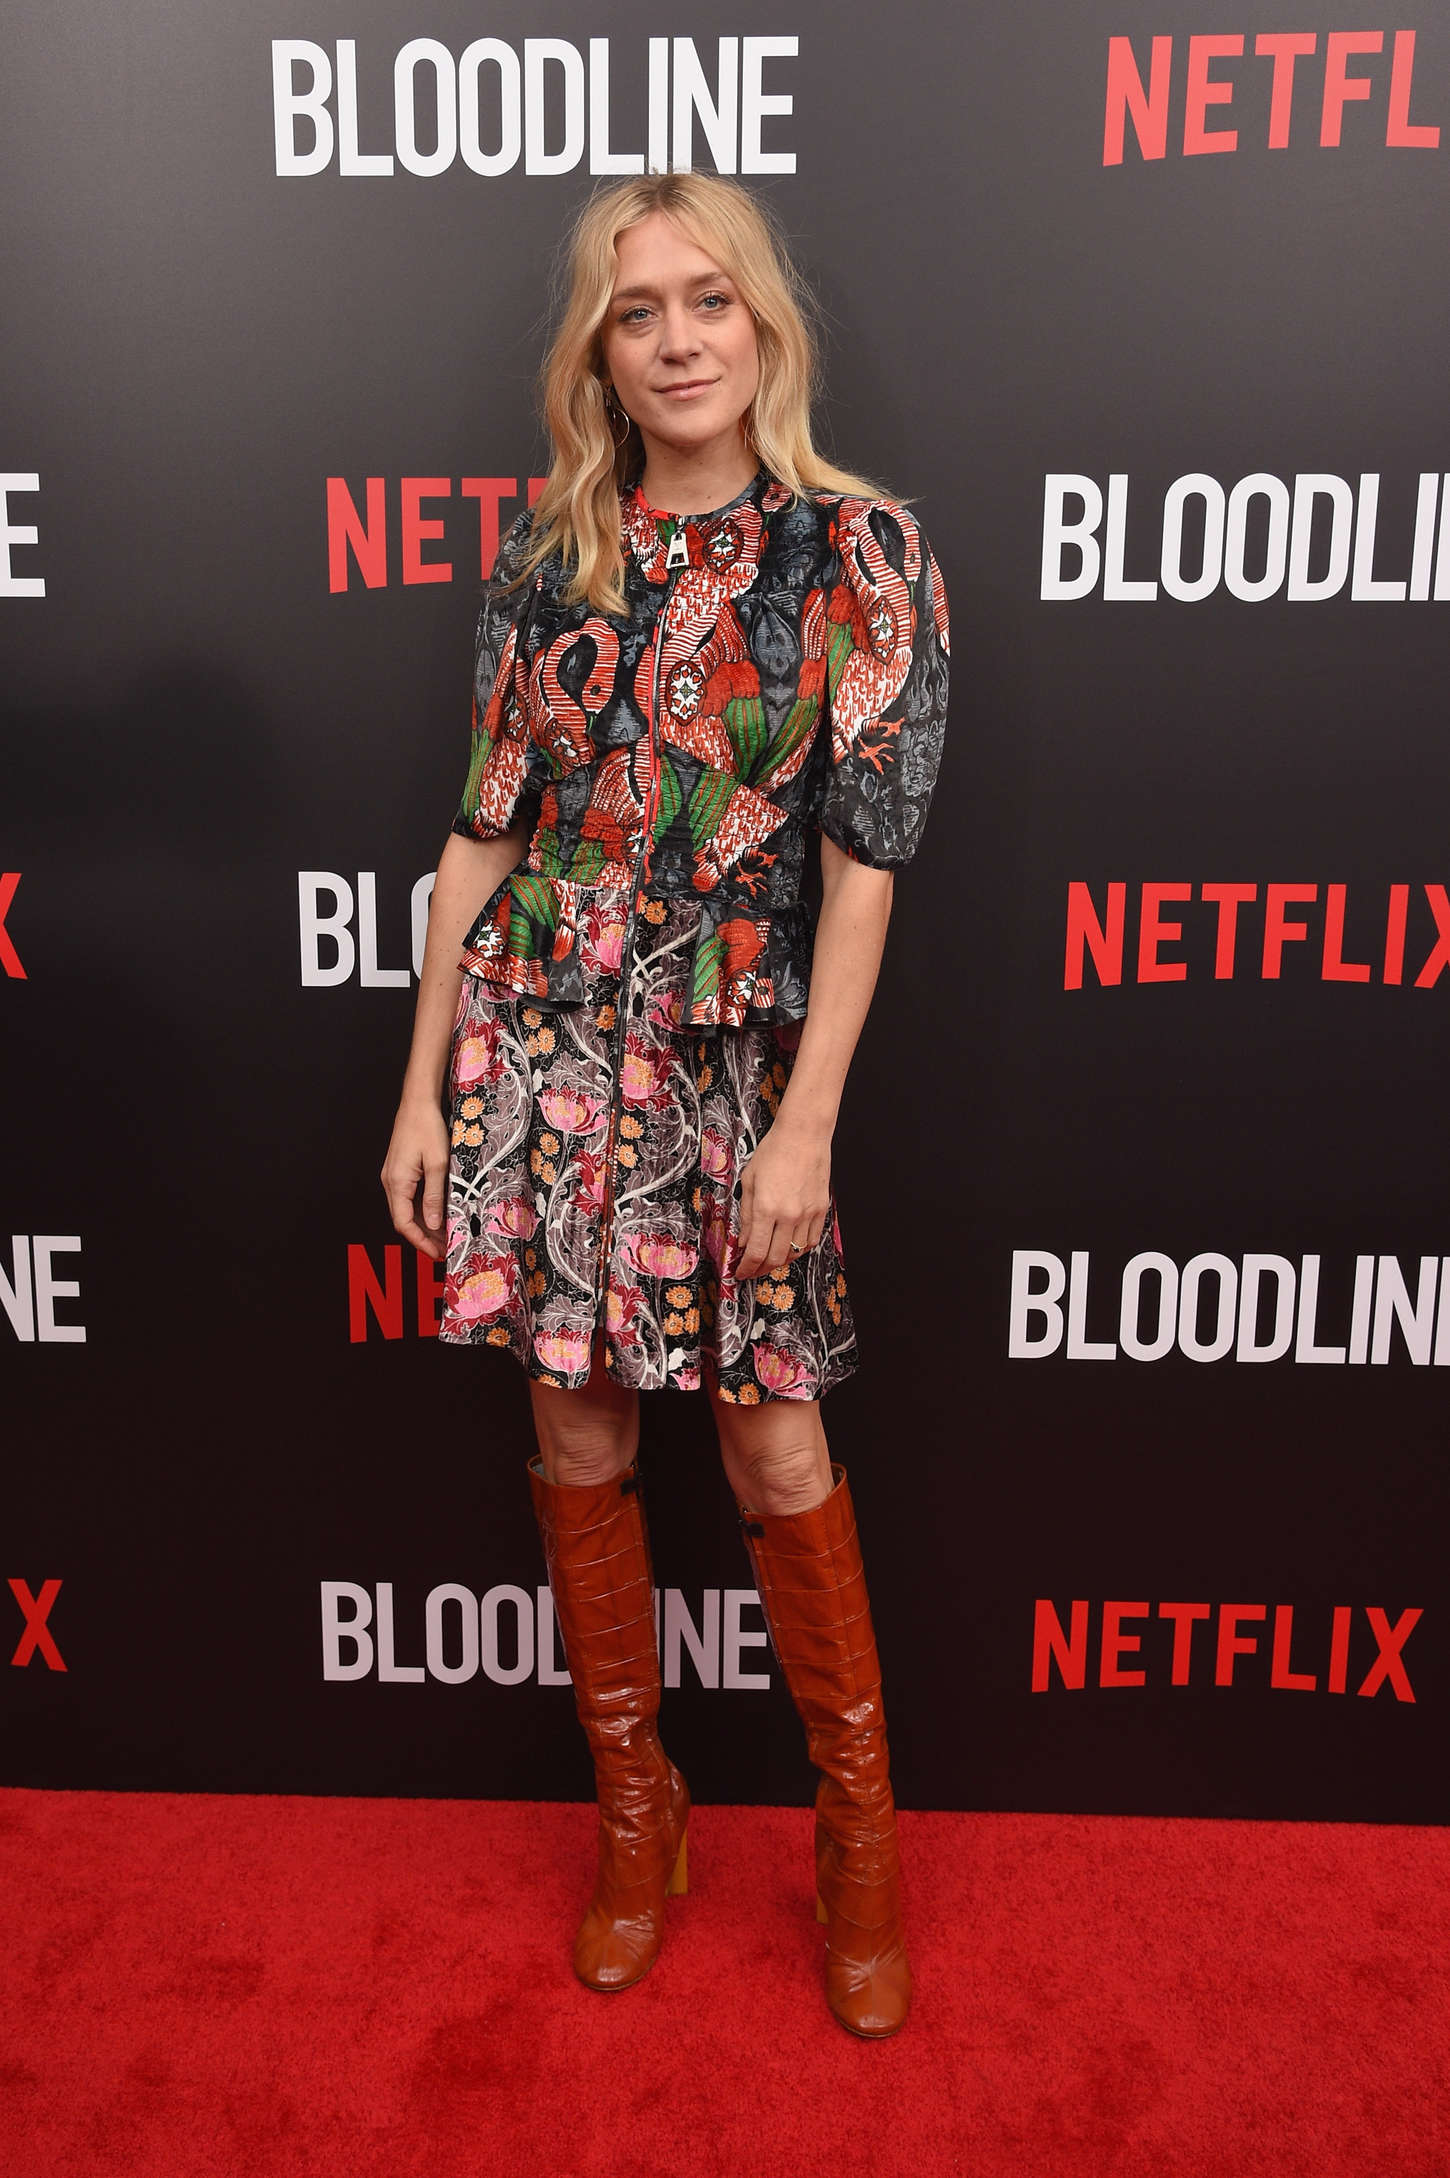 Chloe Sevigny Bloodline Series Premiere in New York-1